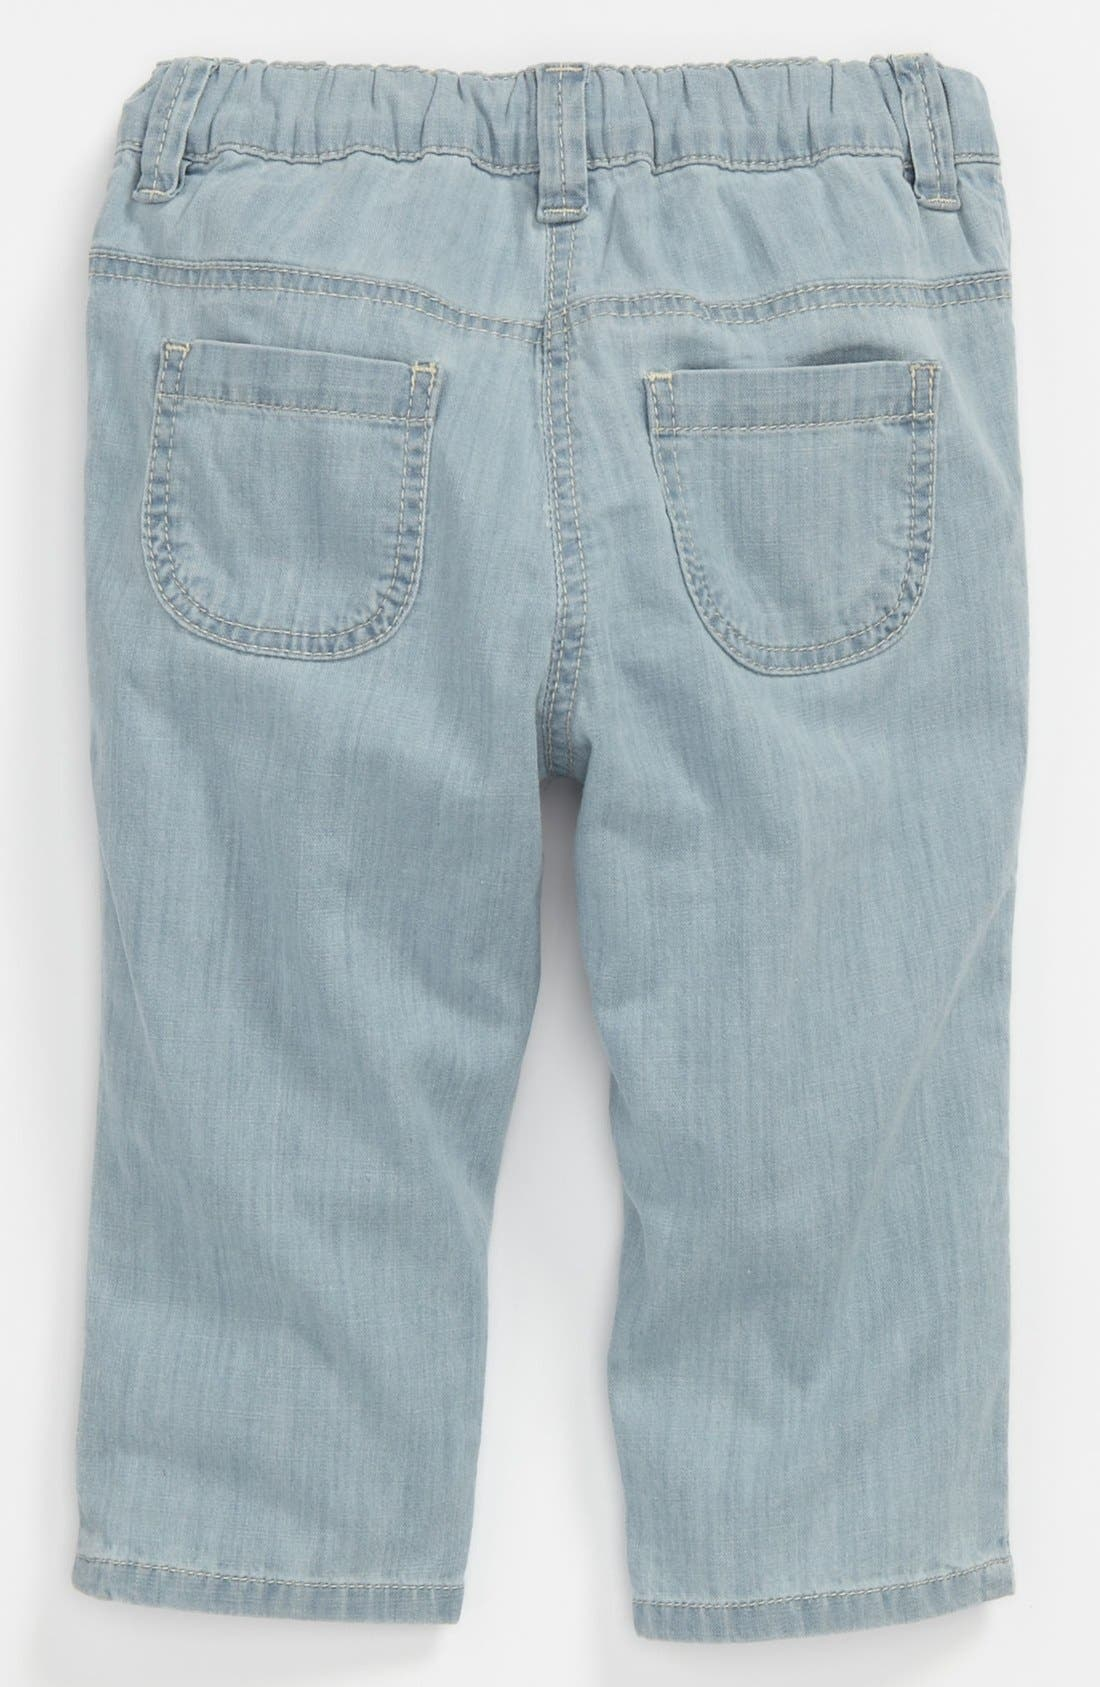 Alternate Image 1 Selected - Chloé Bleached Denim Pants (Baby)